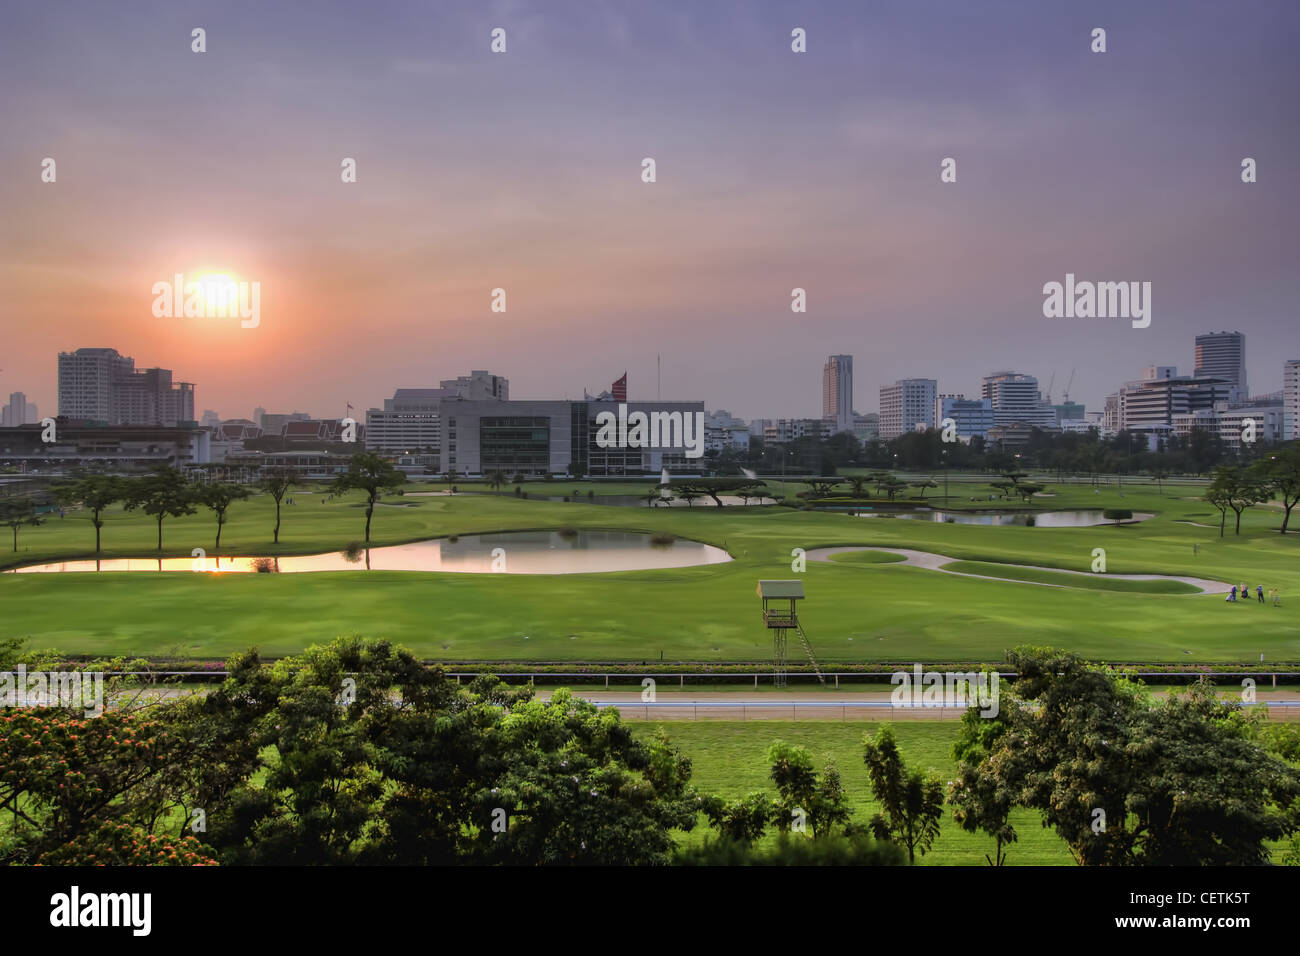 The Elite's Green Space in the Center of Bangkok | Royal Bangkok Sports Club (RBSC) - Stock Image